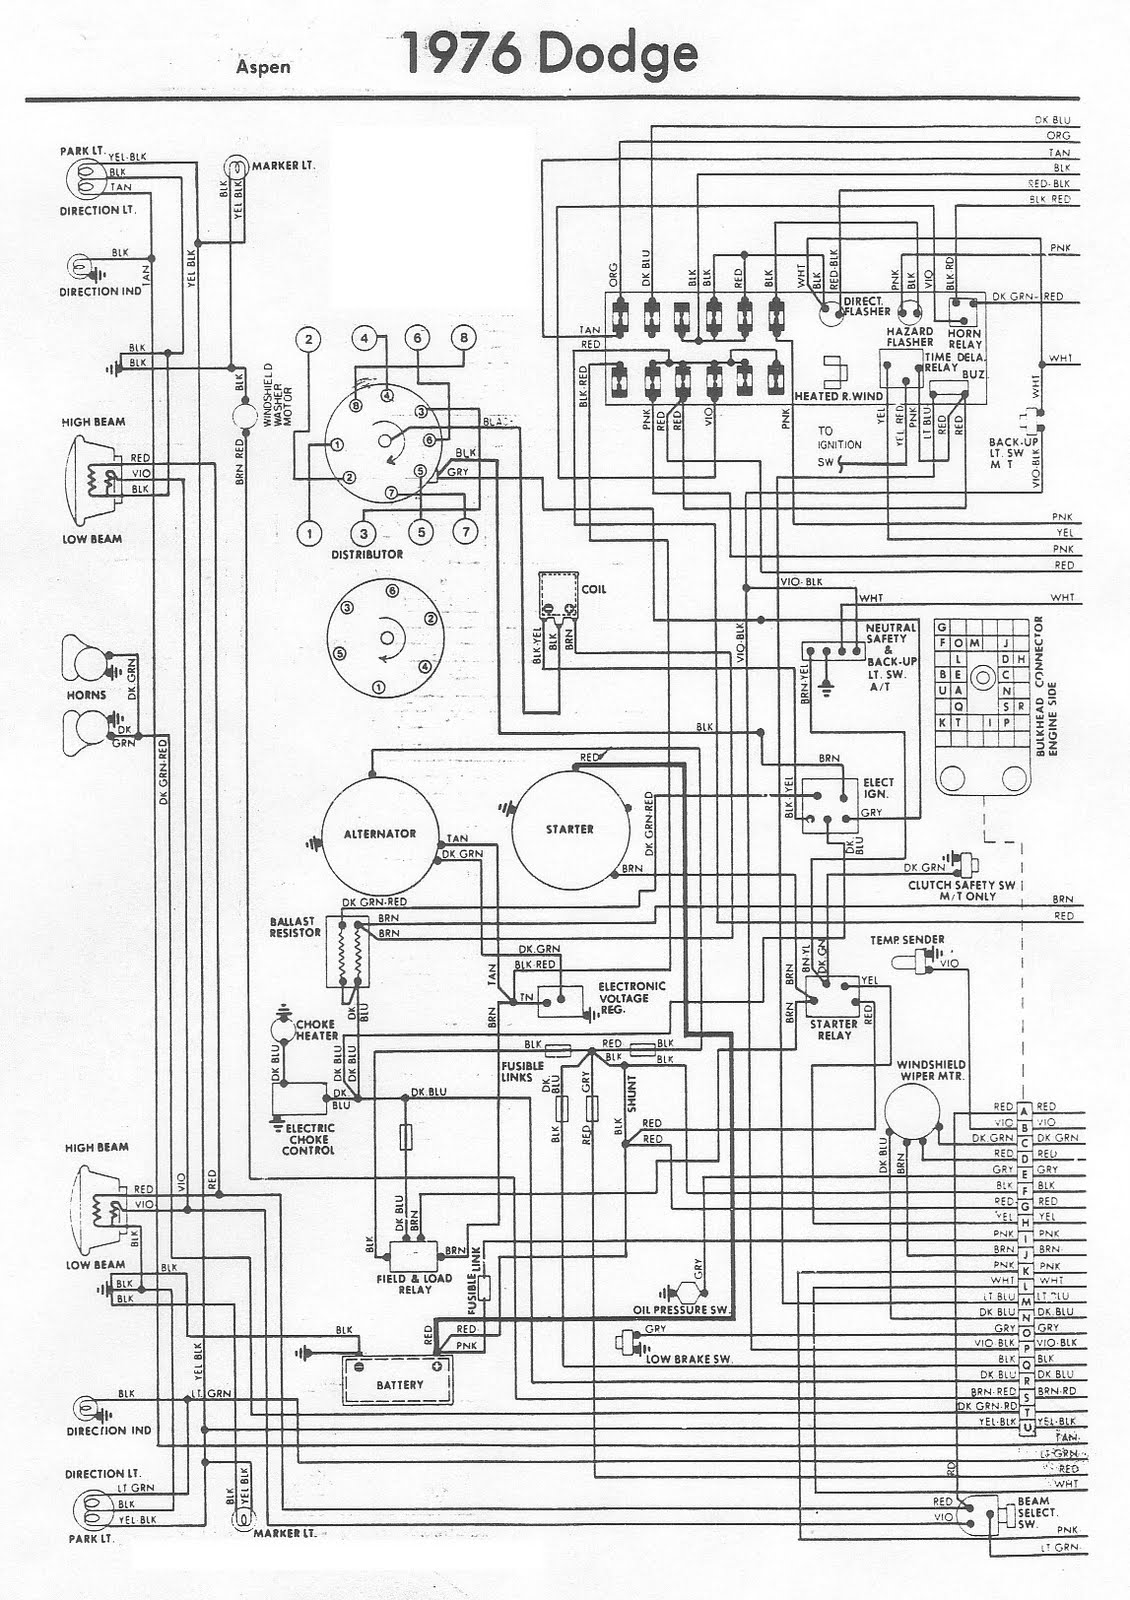 76_Dodge_Aspen_Engine_wiring free auto wiring diagram 1976 dodge aspen engine compartment Trailer Wiring Harness Chrysler at eliteediting.co